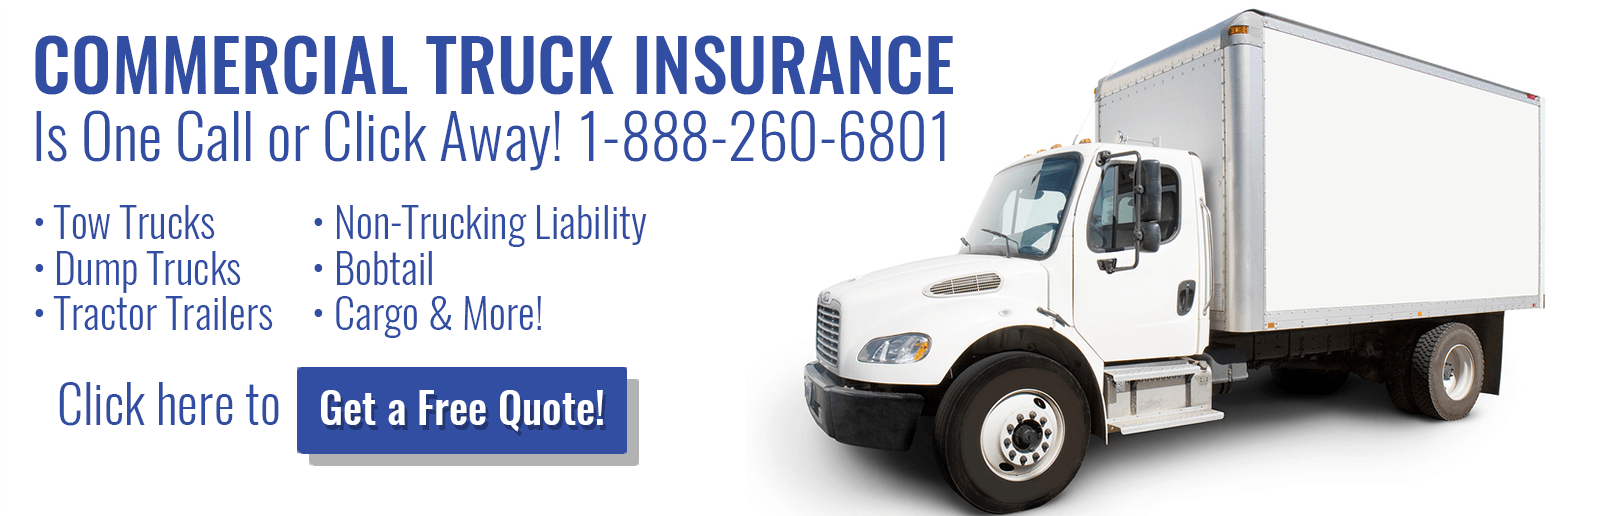 Commercial Truck Insurance Is One Call or Click Away! 1-888-260-6801